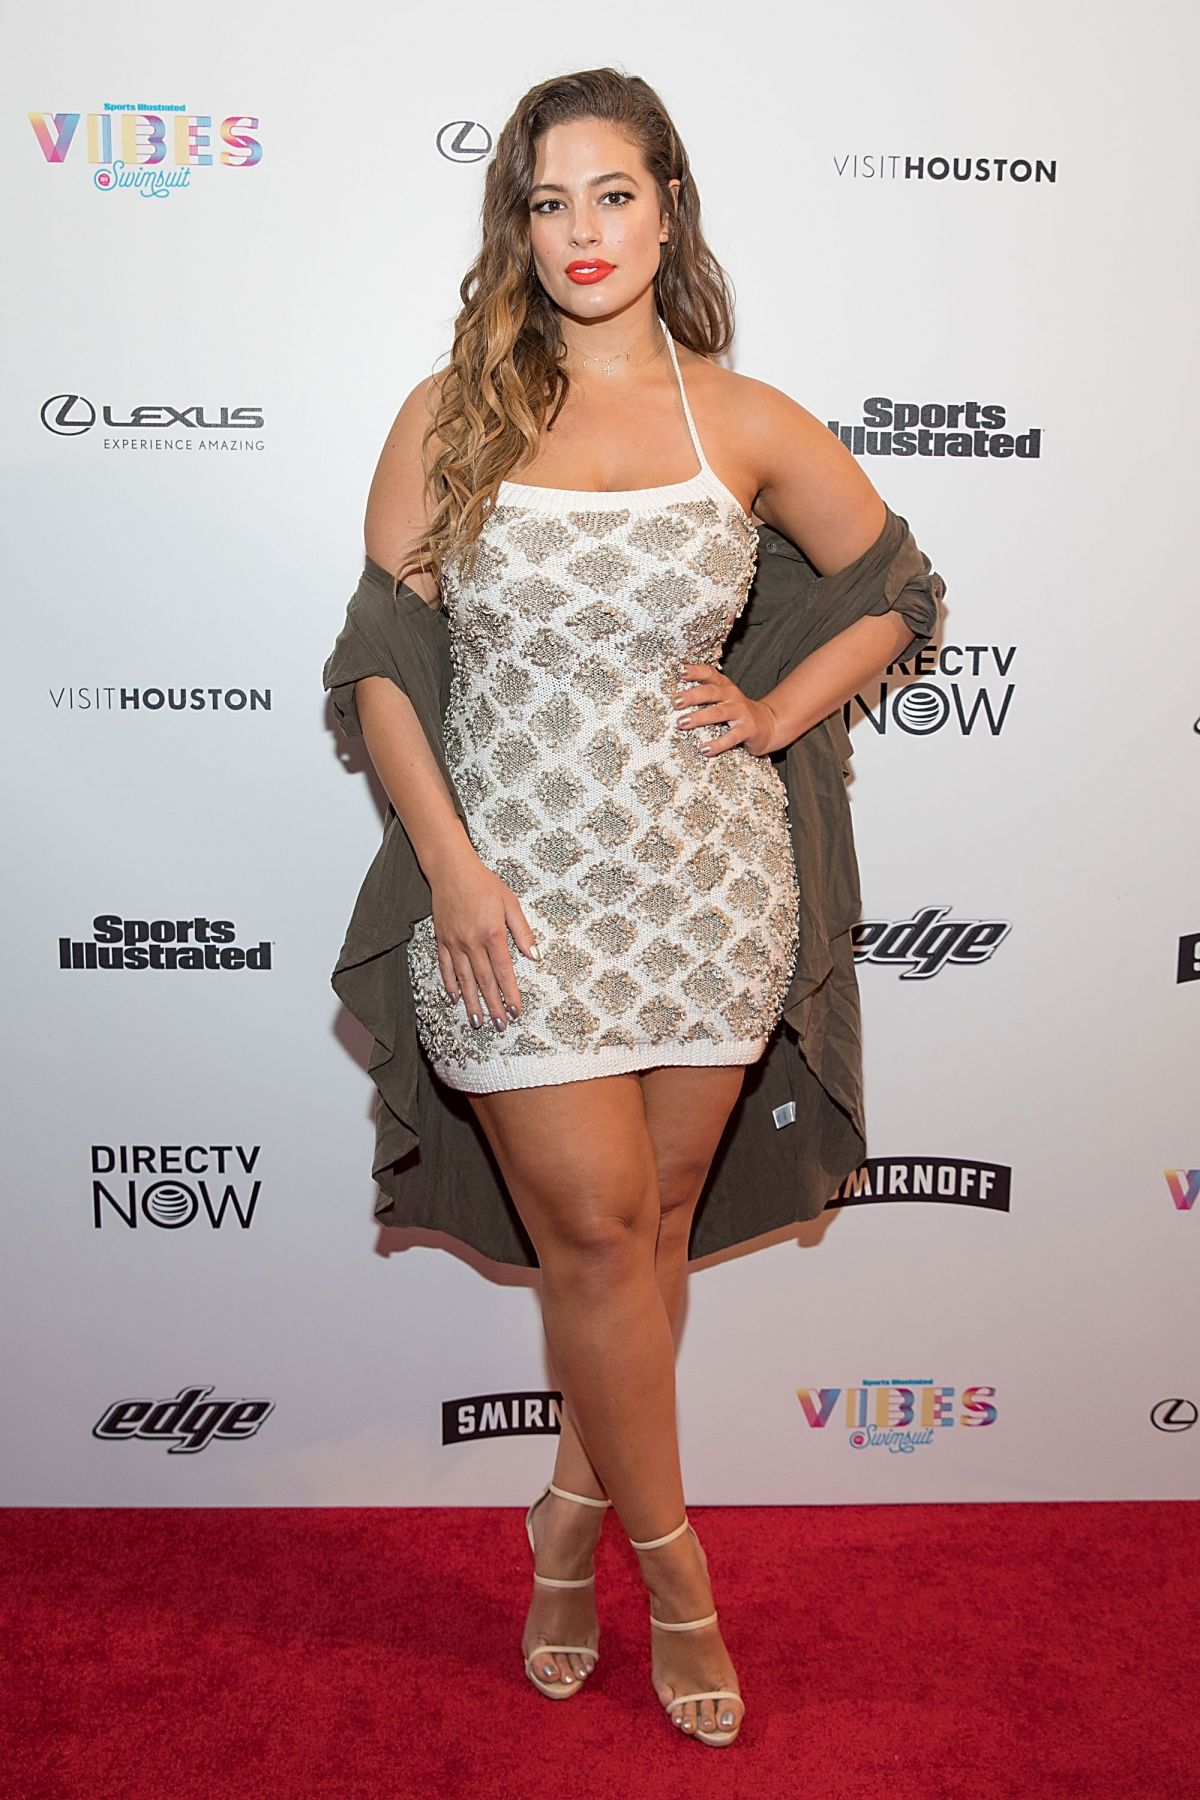 Ashley graham vibes by si swimsuit launch festival in houston